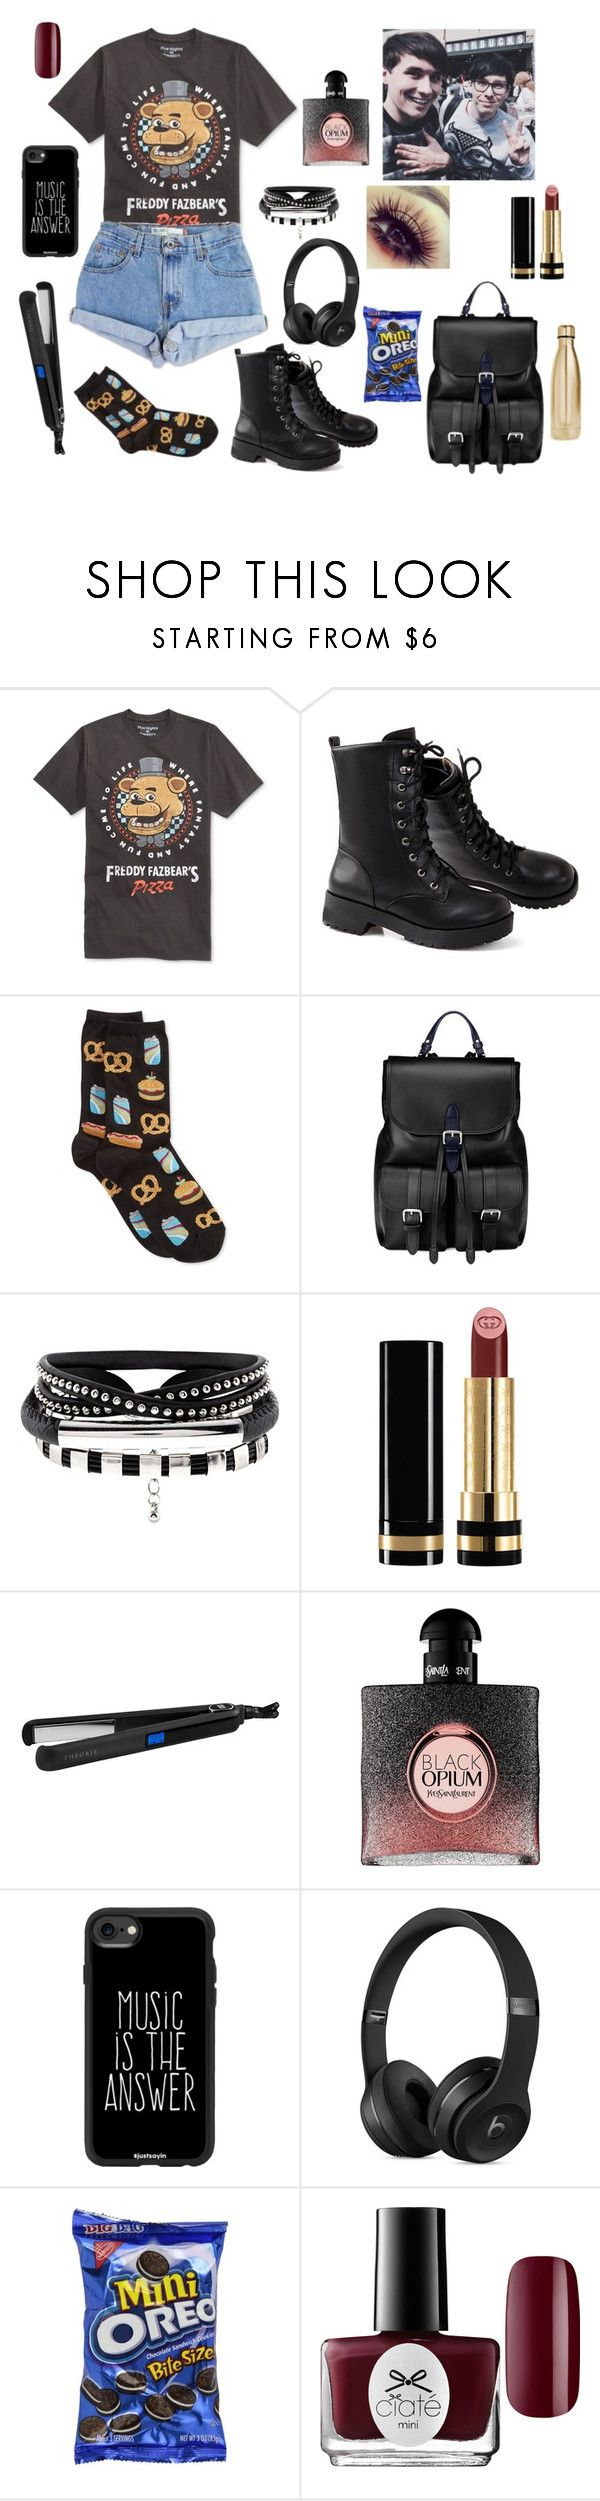 """E3 Day With Dan & Phil! ~ The Boy With The Cat Whiskers"" by gravityfallsgirl33 ❤ liked on Polyvore featuring Bioworld, Levi's, HOT SOX, Aspinal of London, Gucci, Theorie, Yves Saint Laurent, Casetify, Ciaté and S'well"